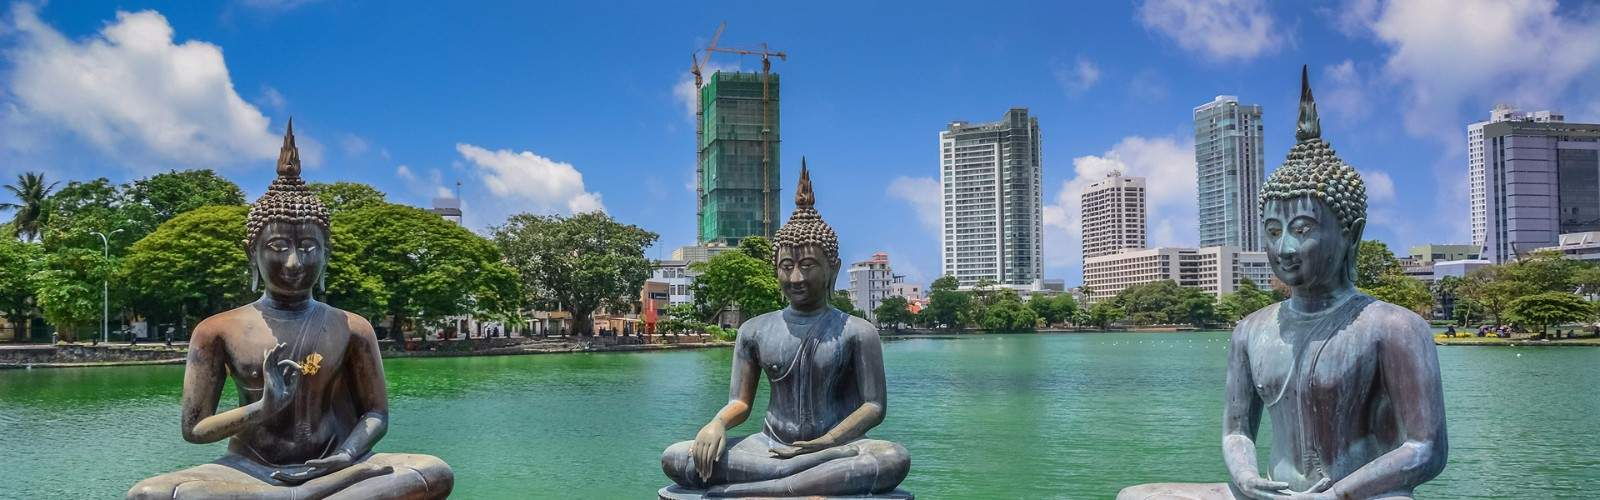 Sri Lanka Short Stay Tour | Wendy Wu Tours